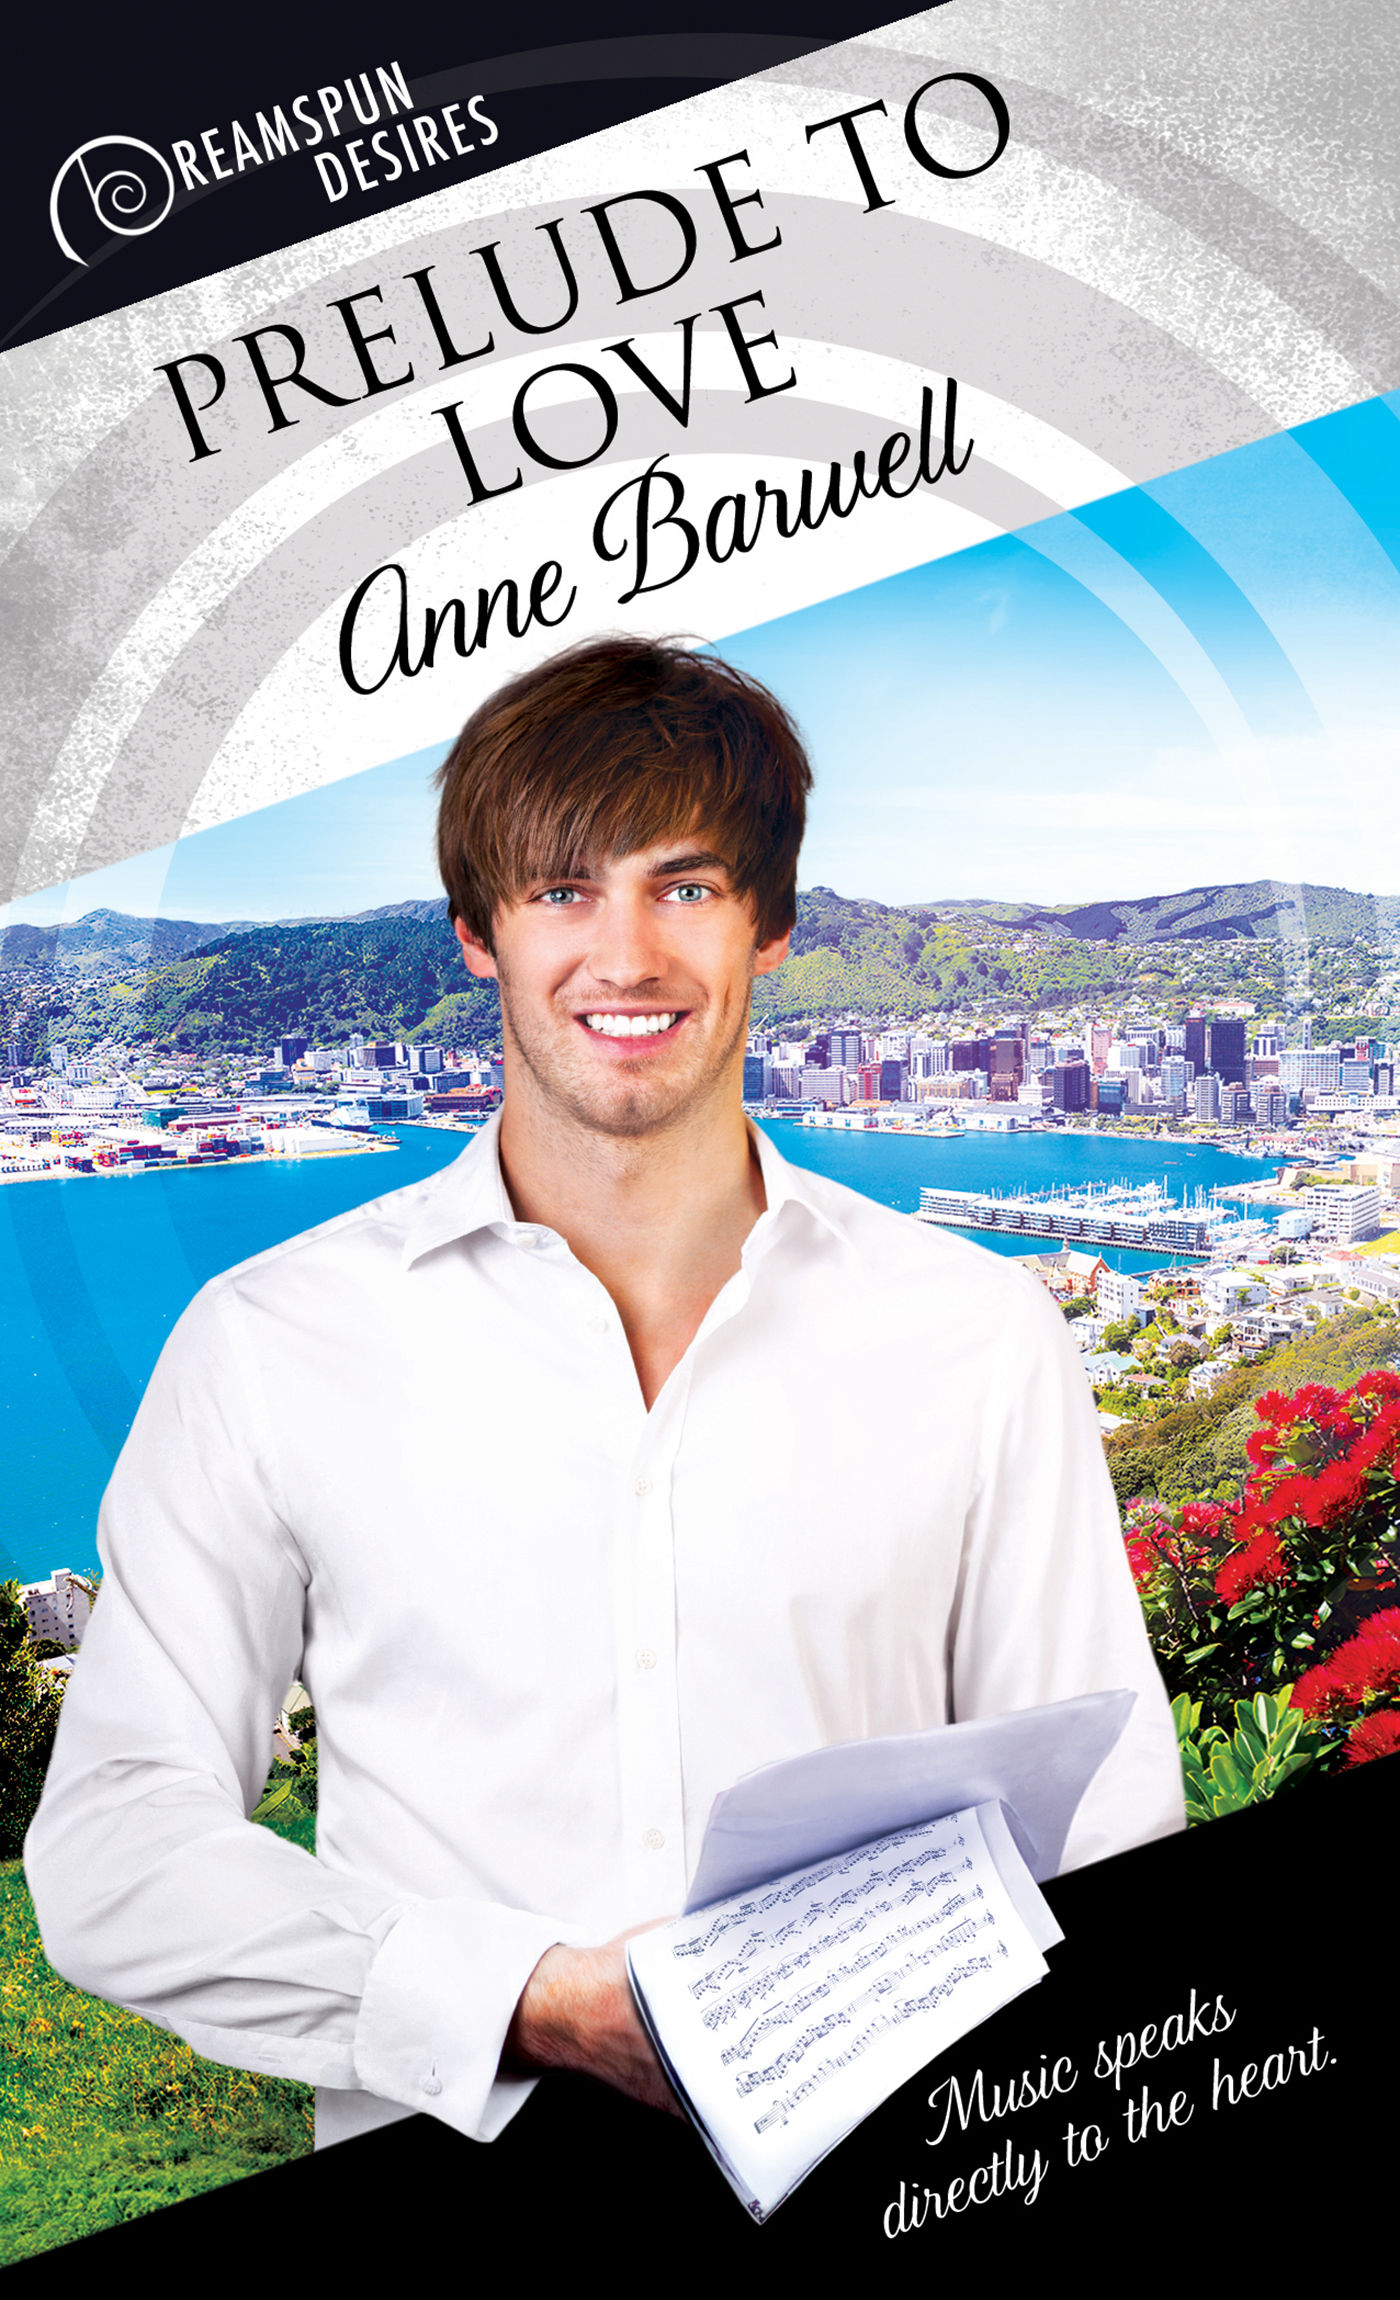 Review: Prelude to Love by Anne Barwell